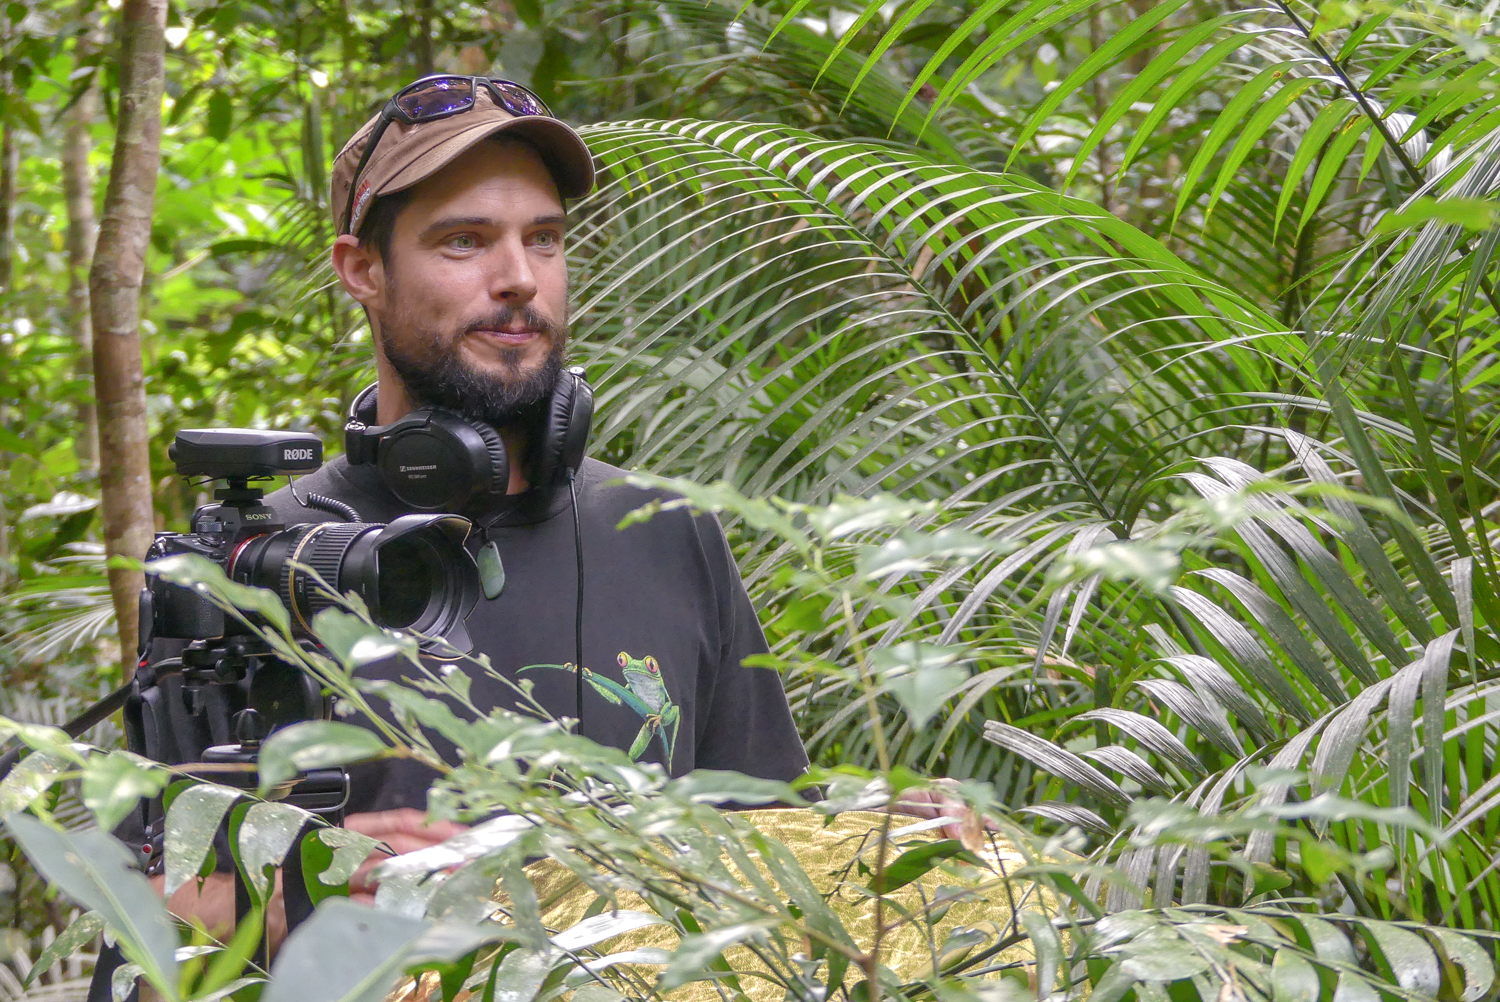 Filming in one of the most bio-diverse and oldest surviving rainforests in the world, The Daintree Rainforest.